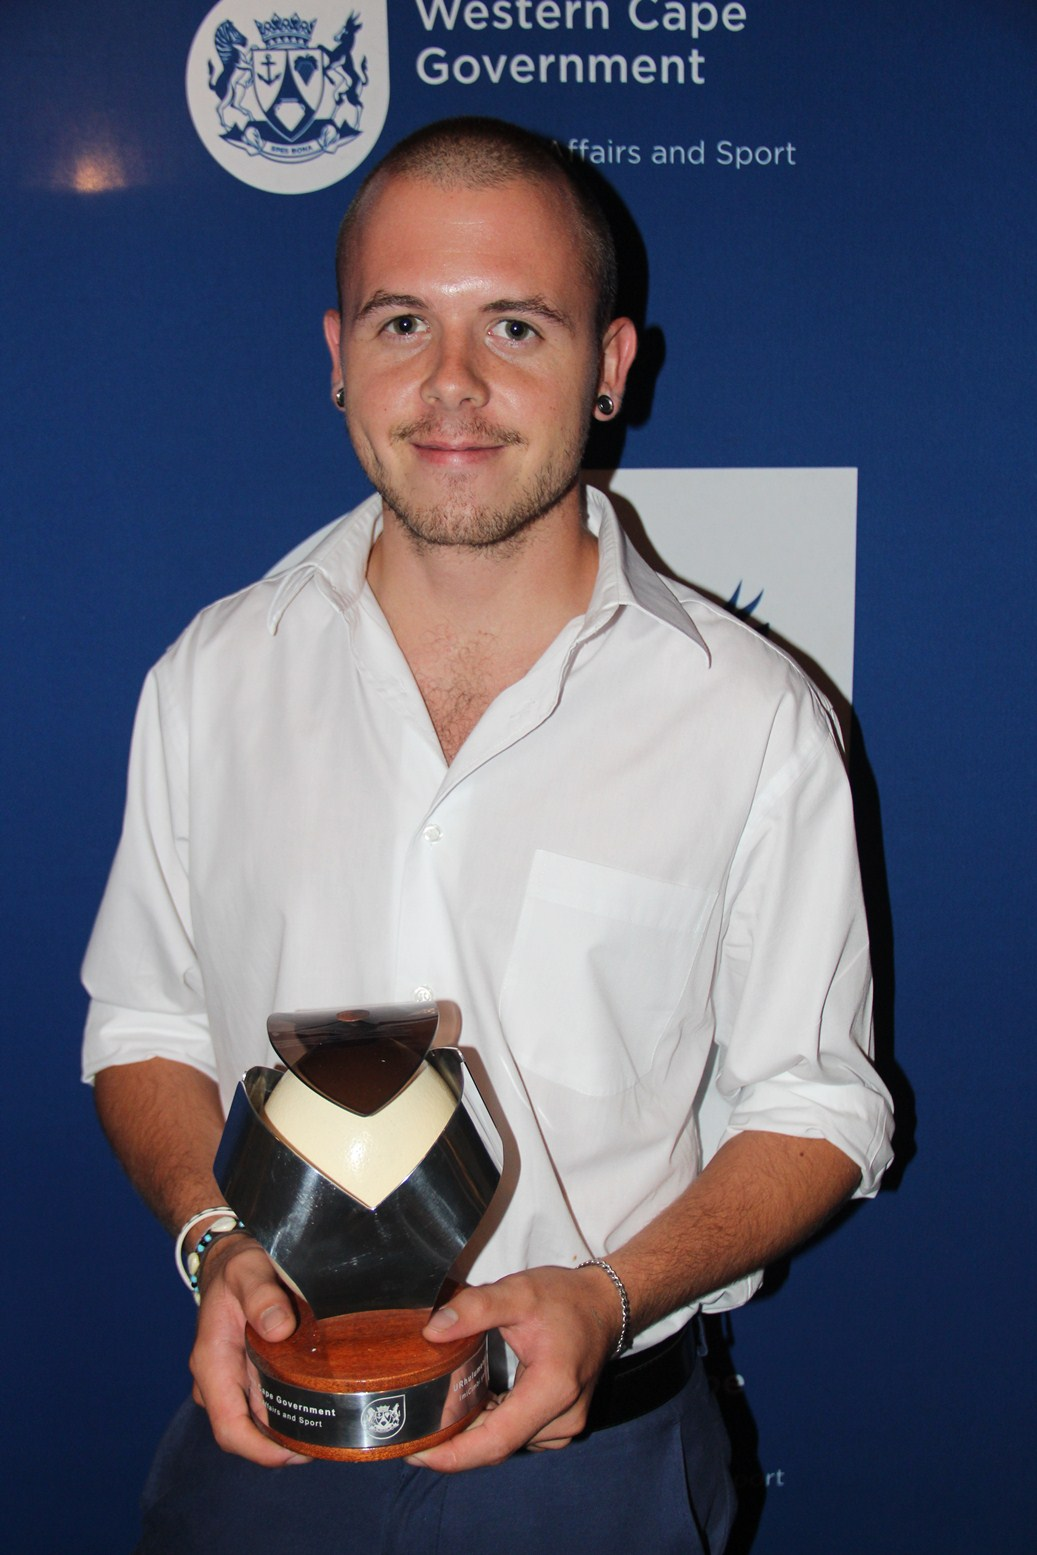 Burghen Siebert, designer of the 2014 Cultural Affairs Awards.